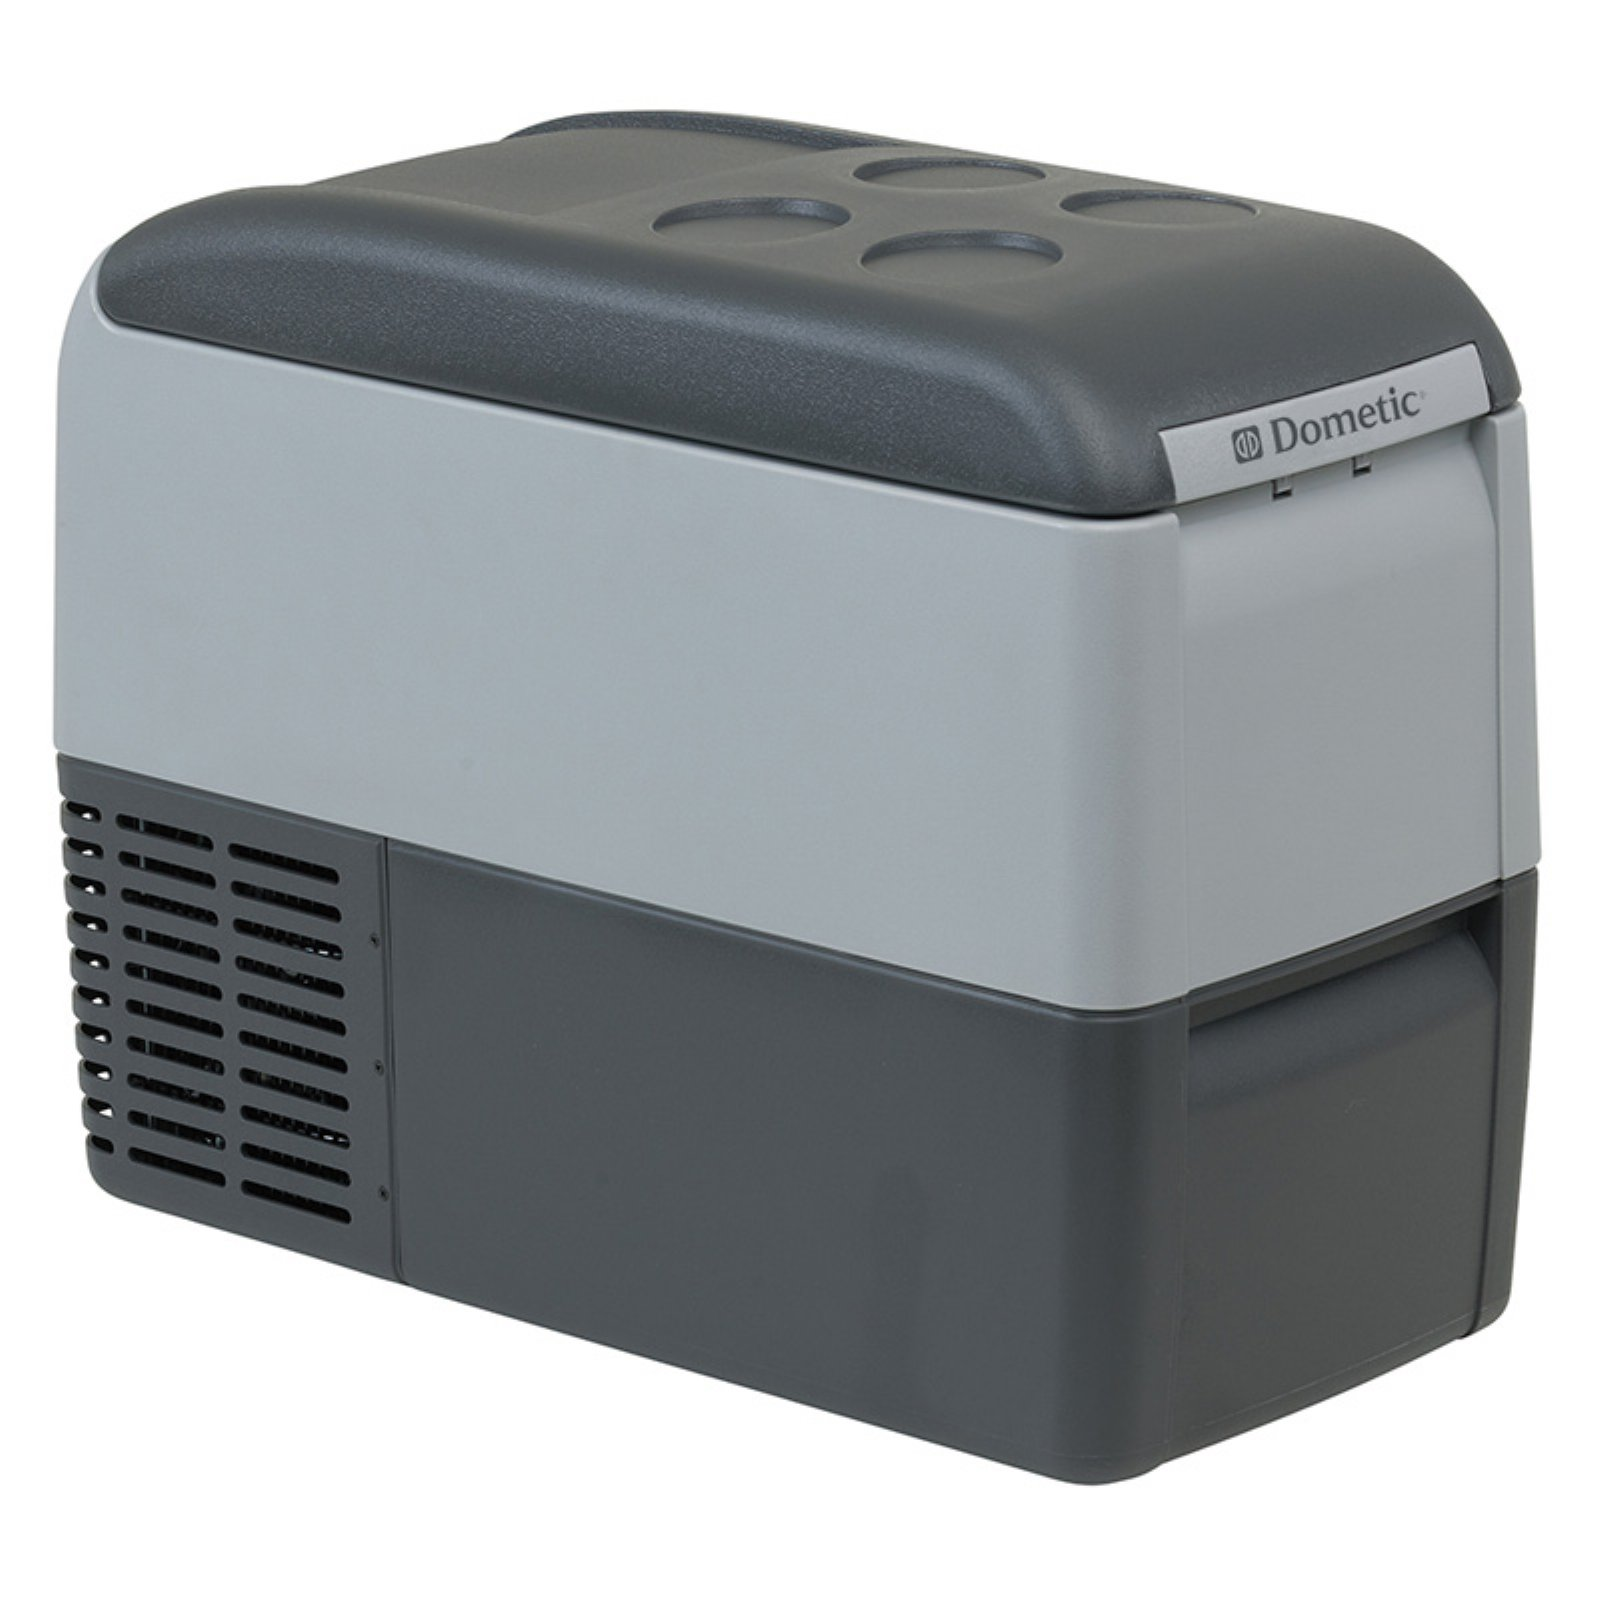 Dometic Portable Cooler/Freezer, CF-025DC, .81 cu ft